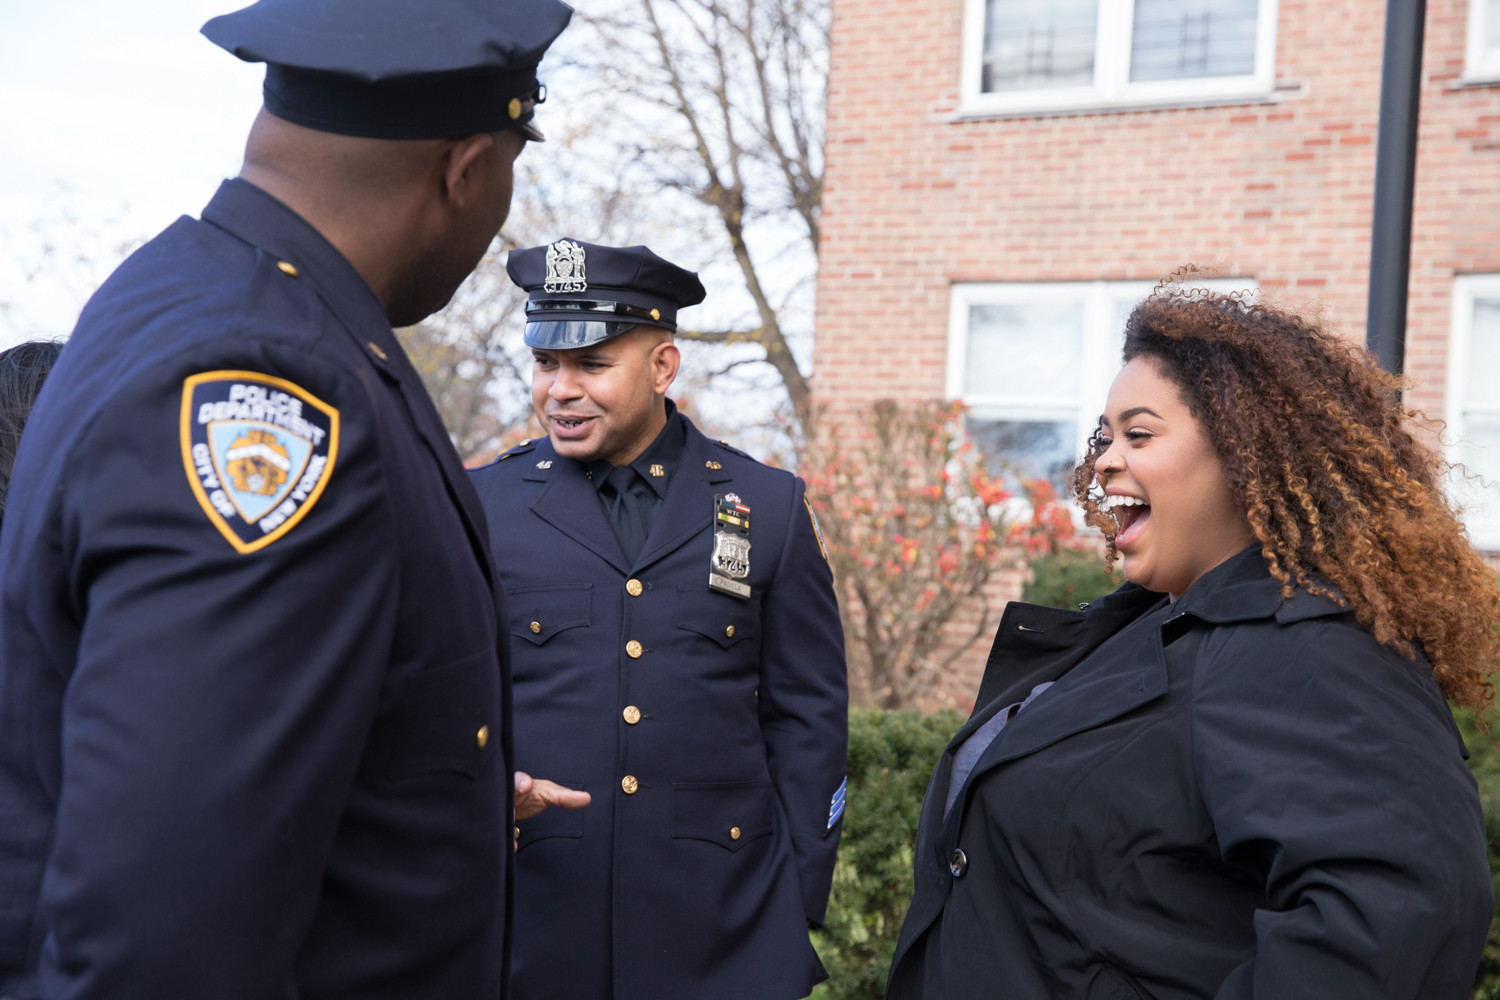 Genesis Villella, the eldest daughter of slain police officer Miosotis Familia, laughs with members of the New York Police Department after a news conference announcing her family's new home at Skyview-on-the-Hudson.